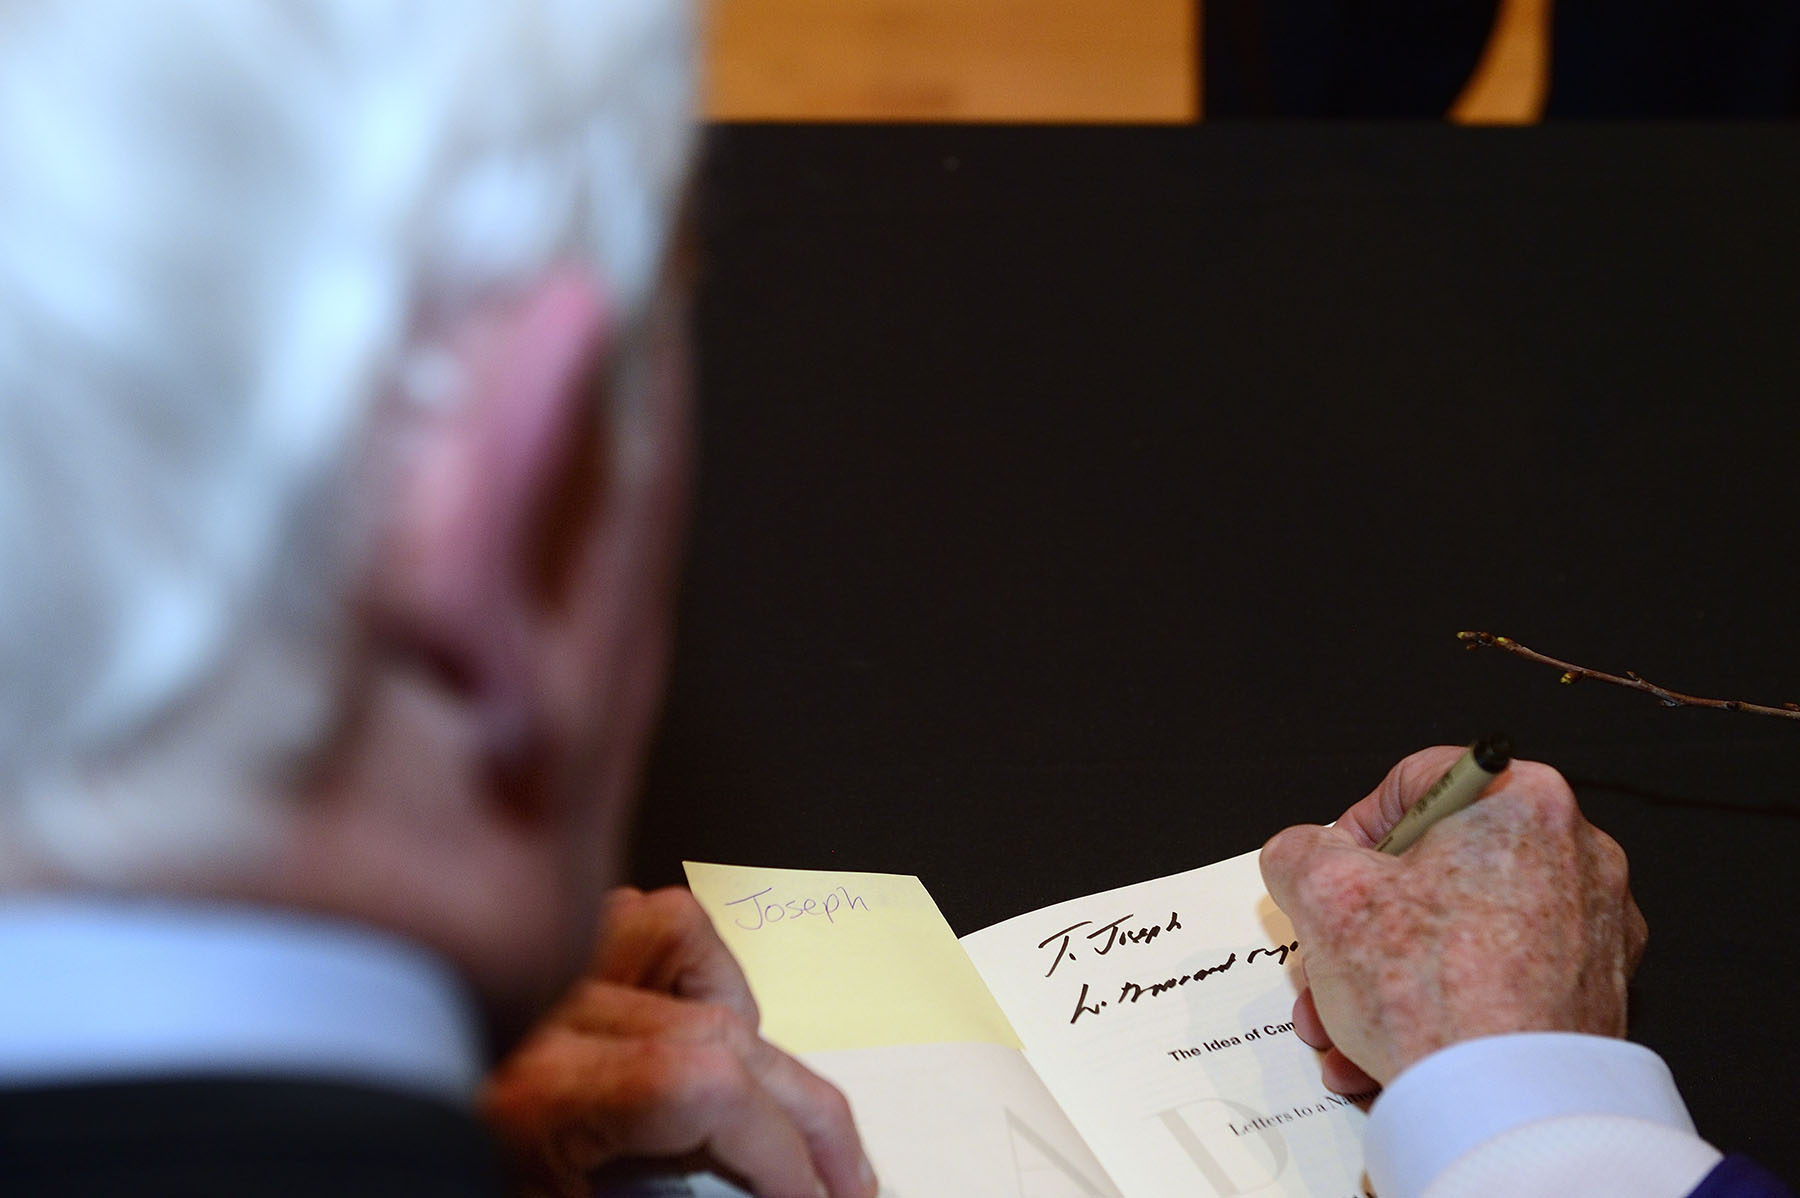 The Governor General signed his new book, The Idea of Canada: Letters to a Nation.